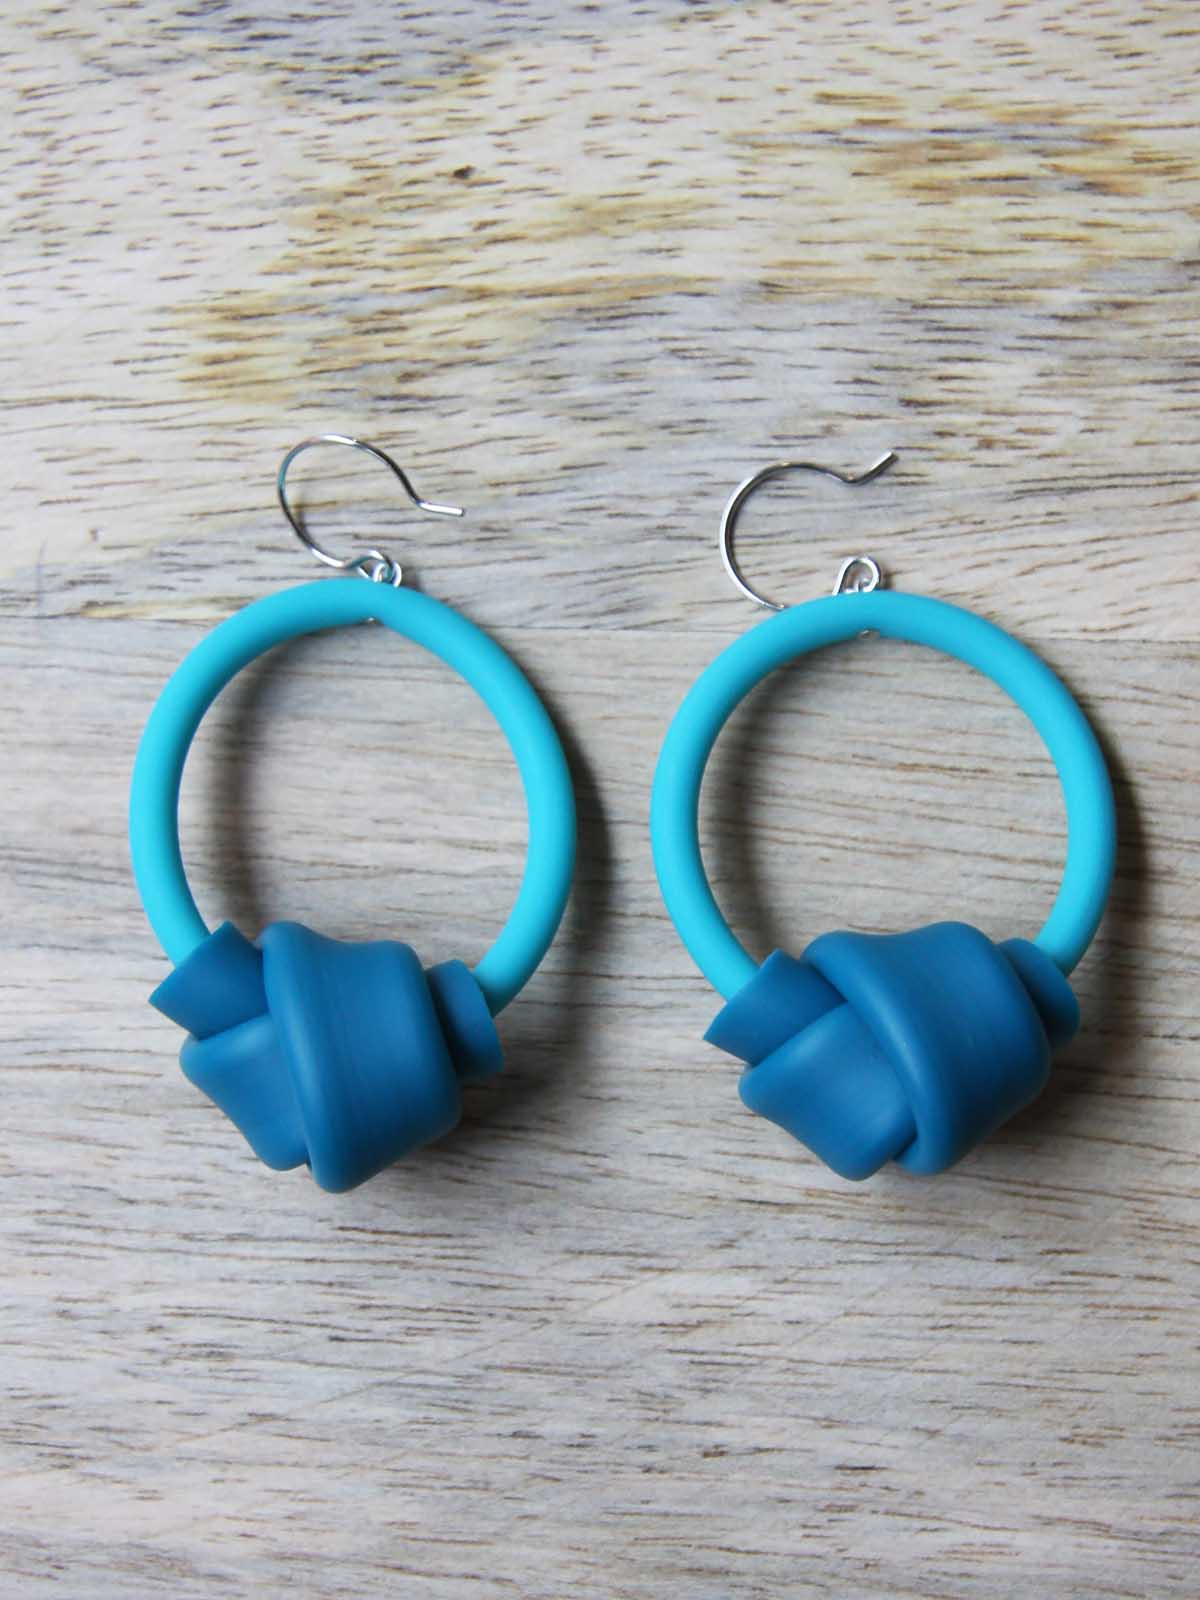 Samuel Coraux Hoops Earrings - Turquoise